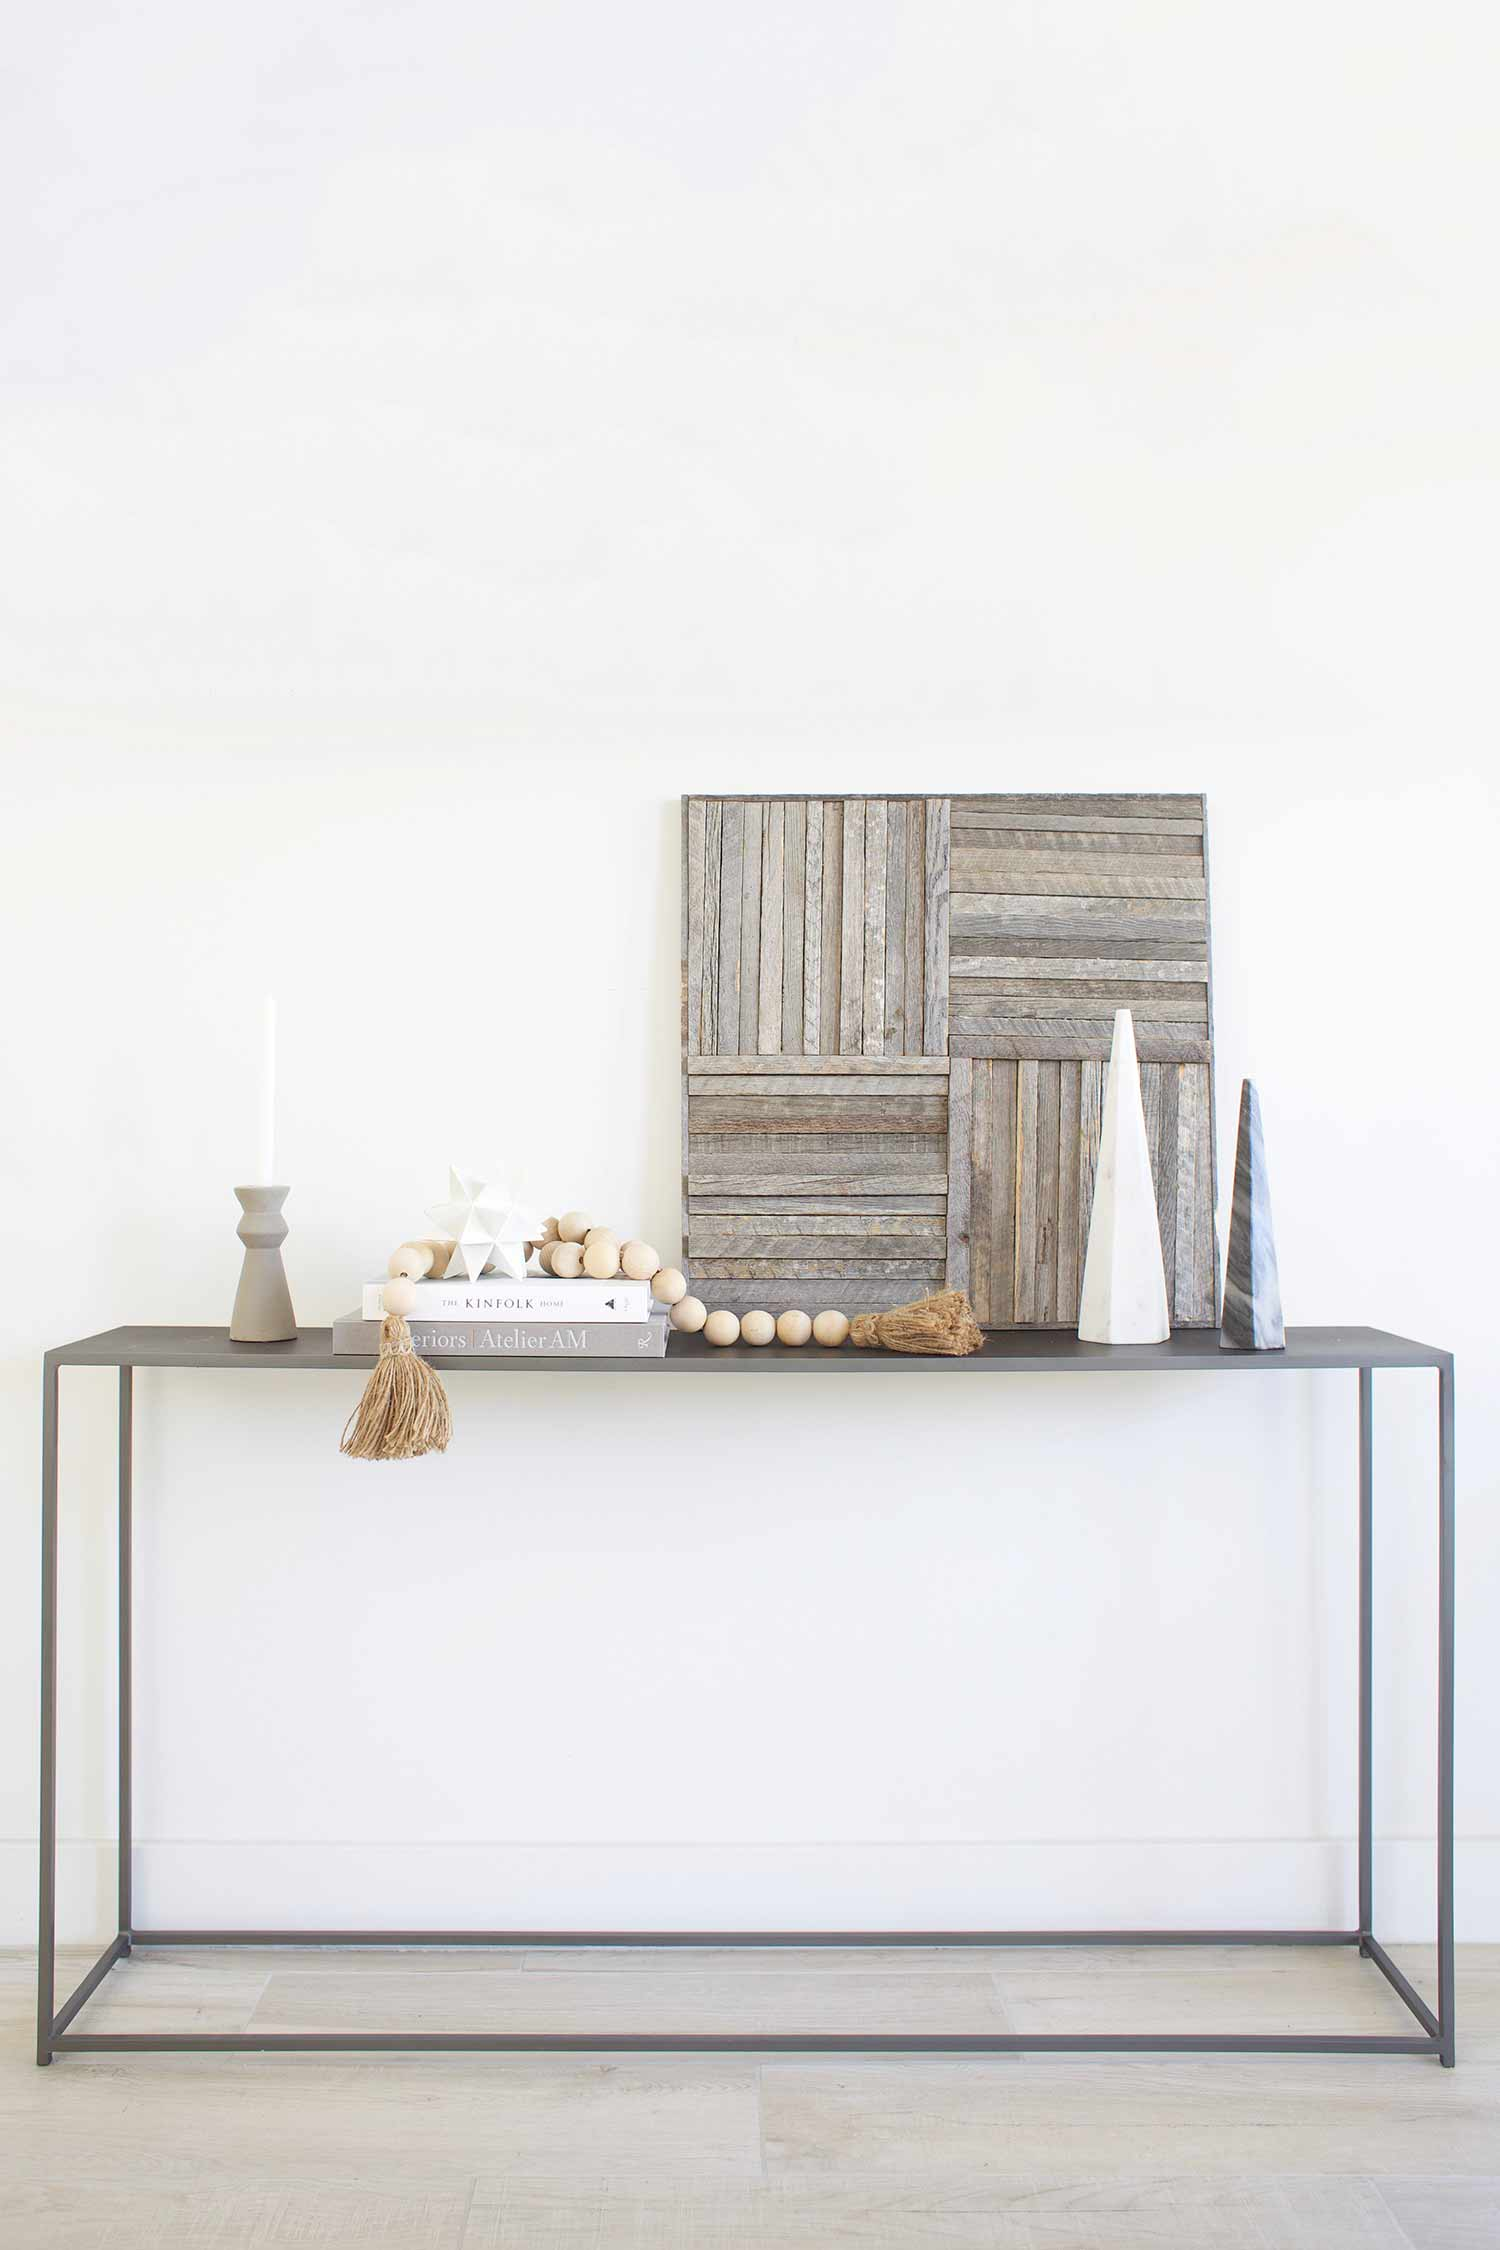 Stikwood wall art panel on credenza